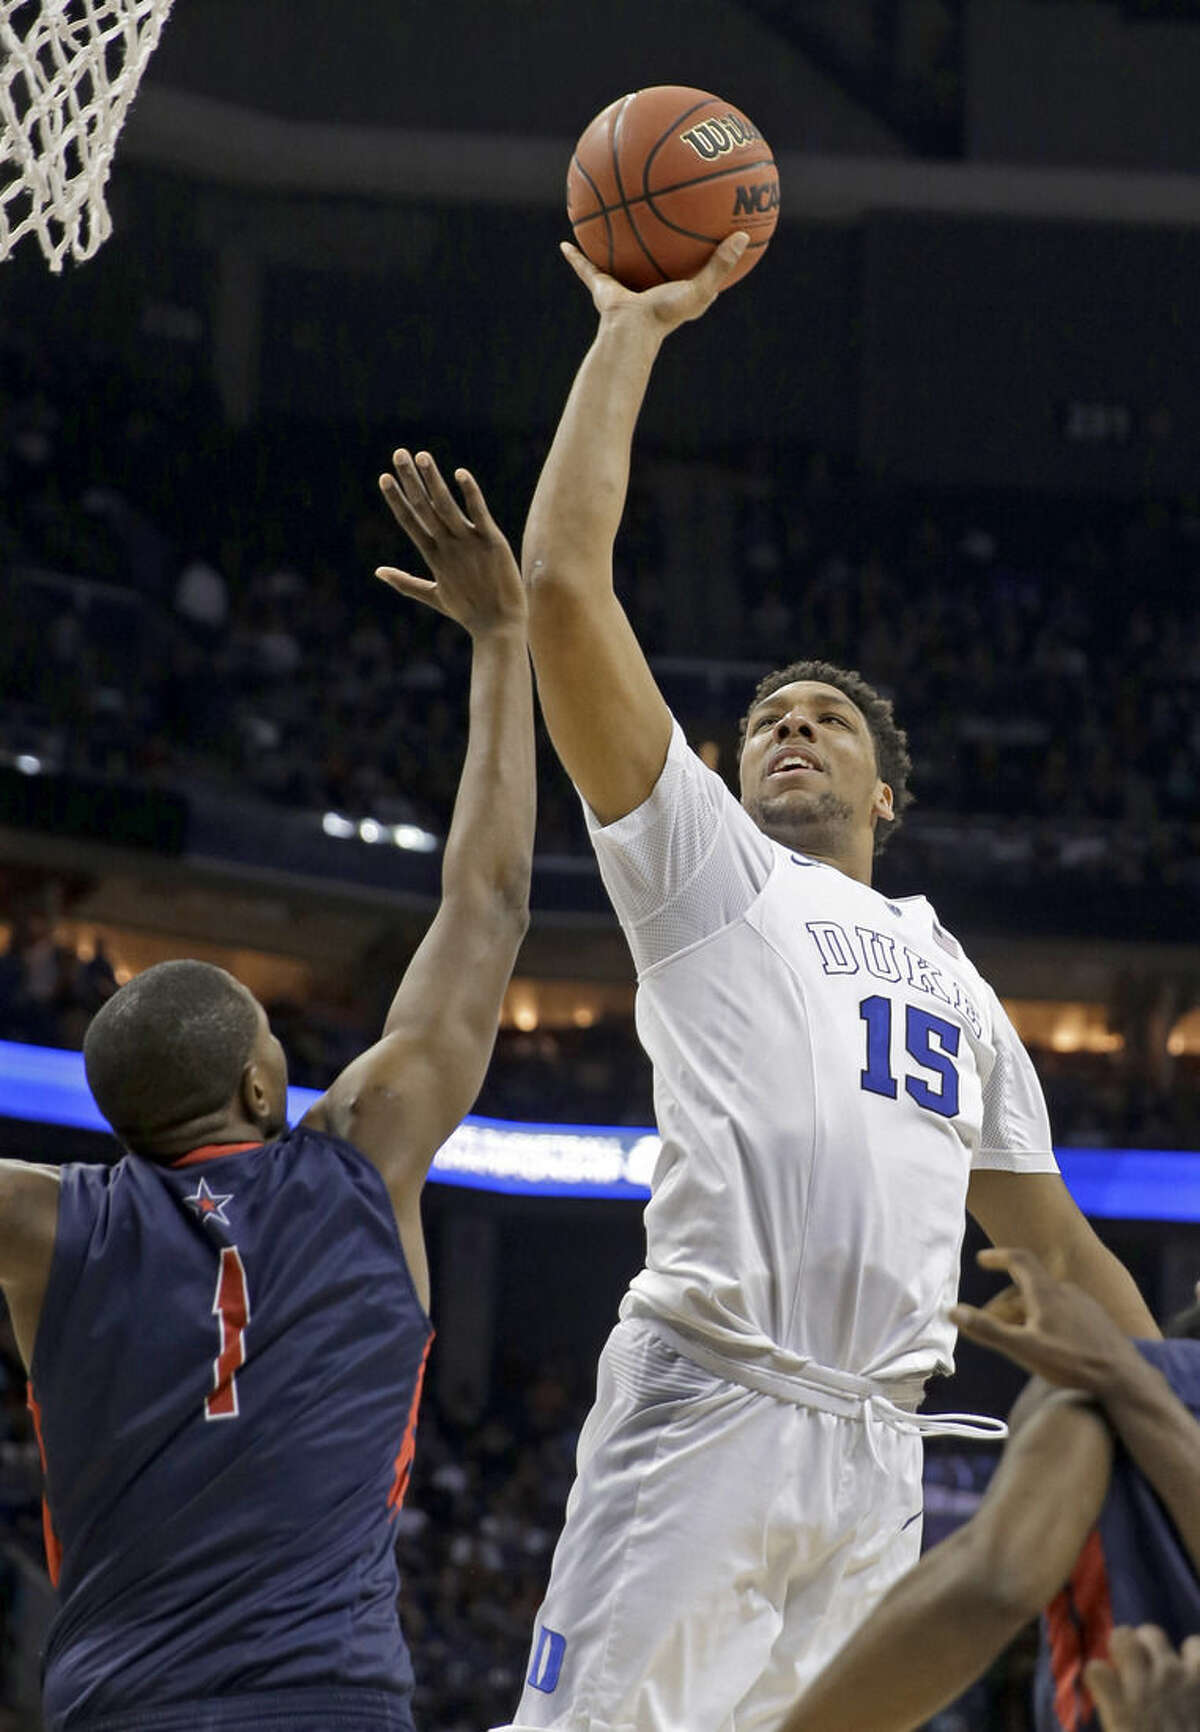 Duke's Jahlil Okafor (15) shoots over Robert Morris's Lionel Gomis (1) during the first half of an NCAA tournament college basketball game in the Round of 64 in Charlotte, N.C., Friday, March 20, 2015. (AP Photo/Gerald Herbert)